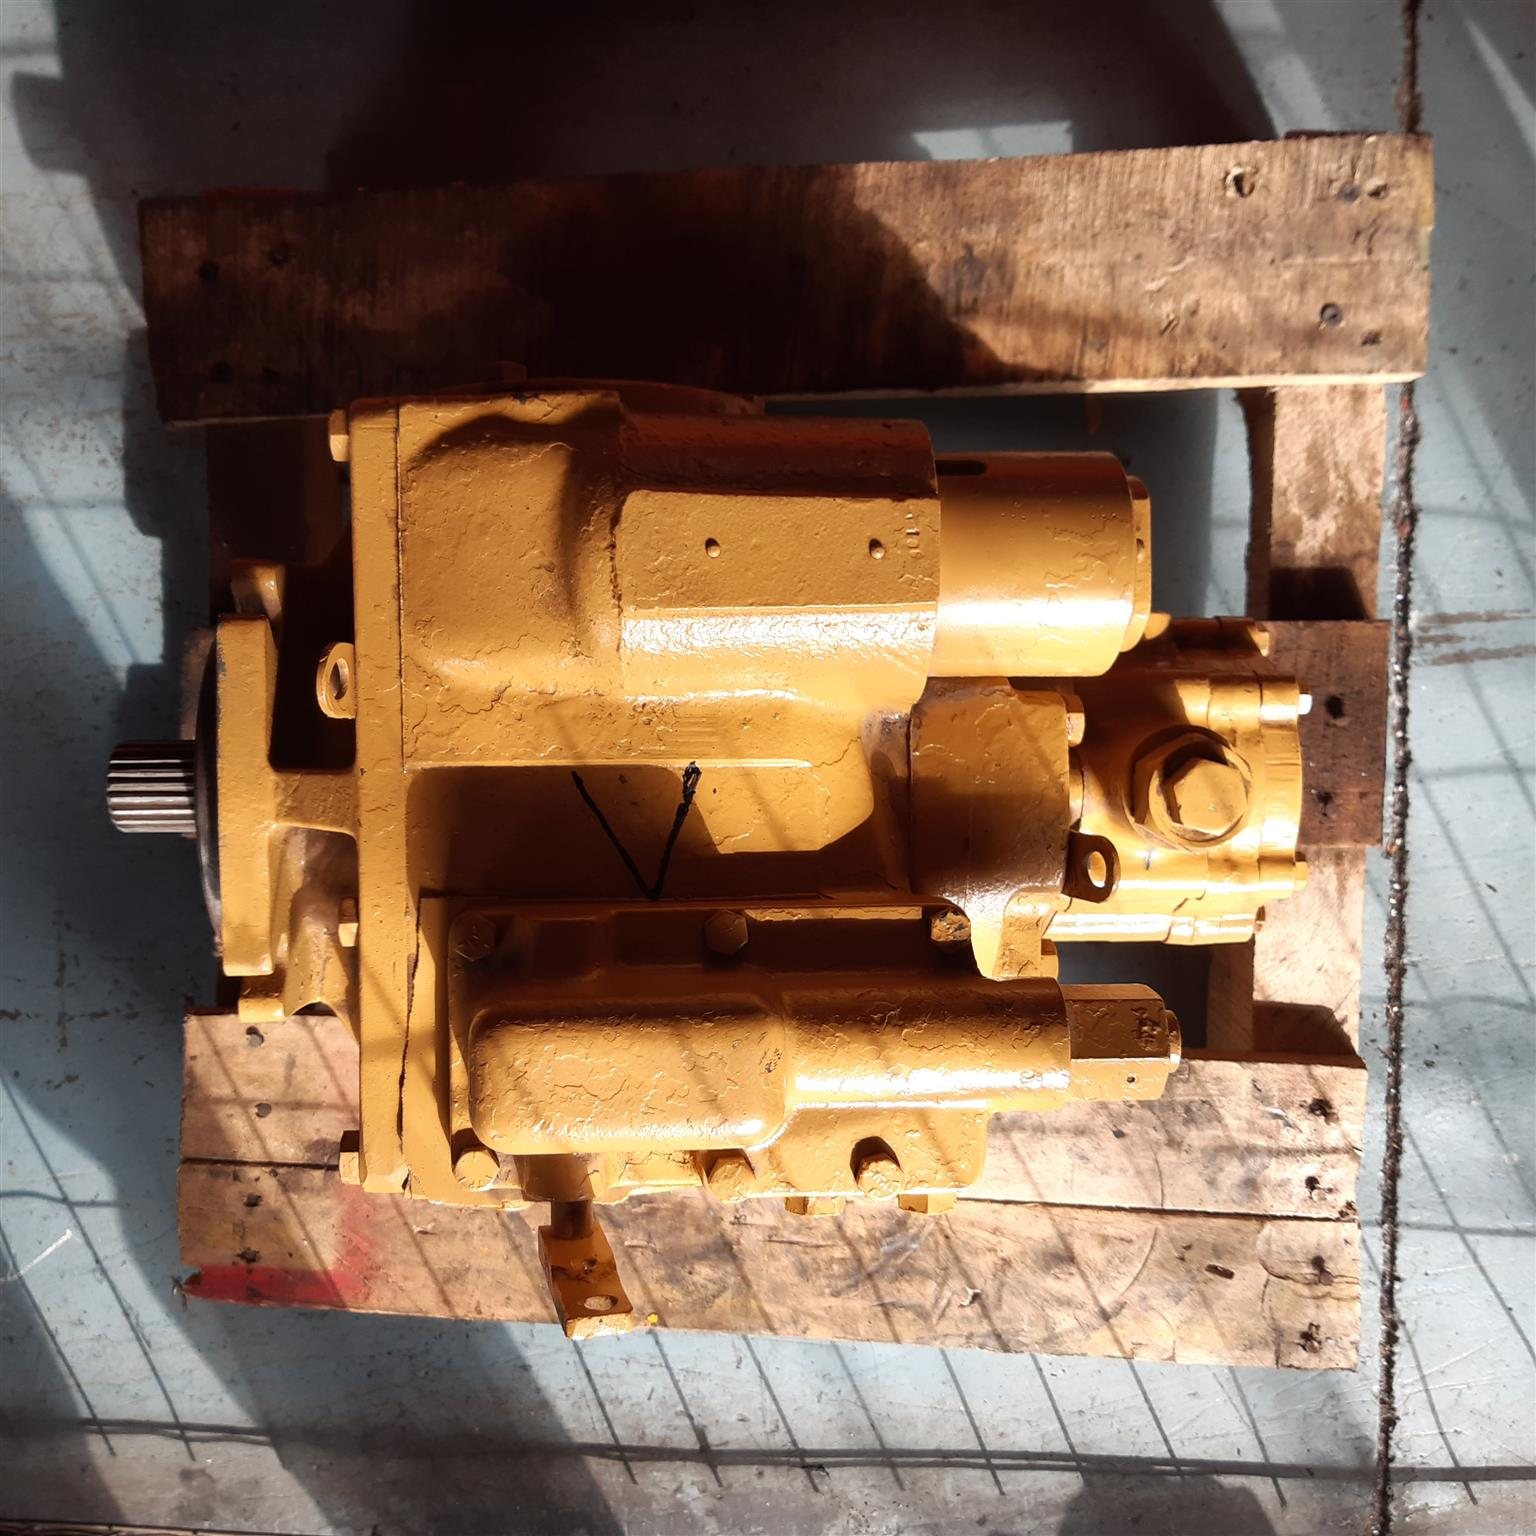 Eaton 4621 hydraulic pump for concrete mixer trucks. Well known durable hard worker.